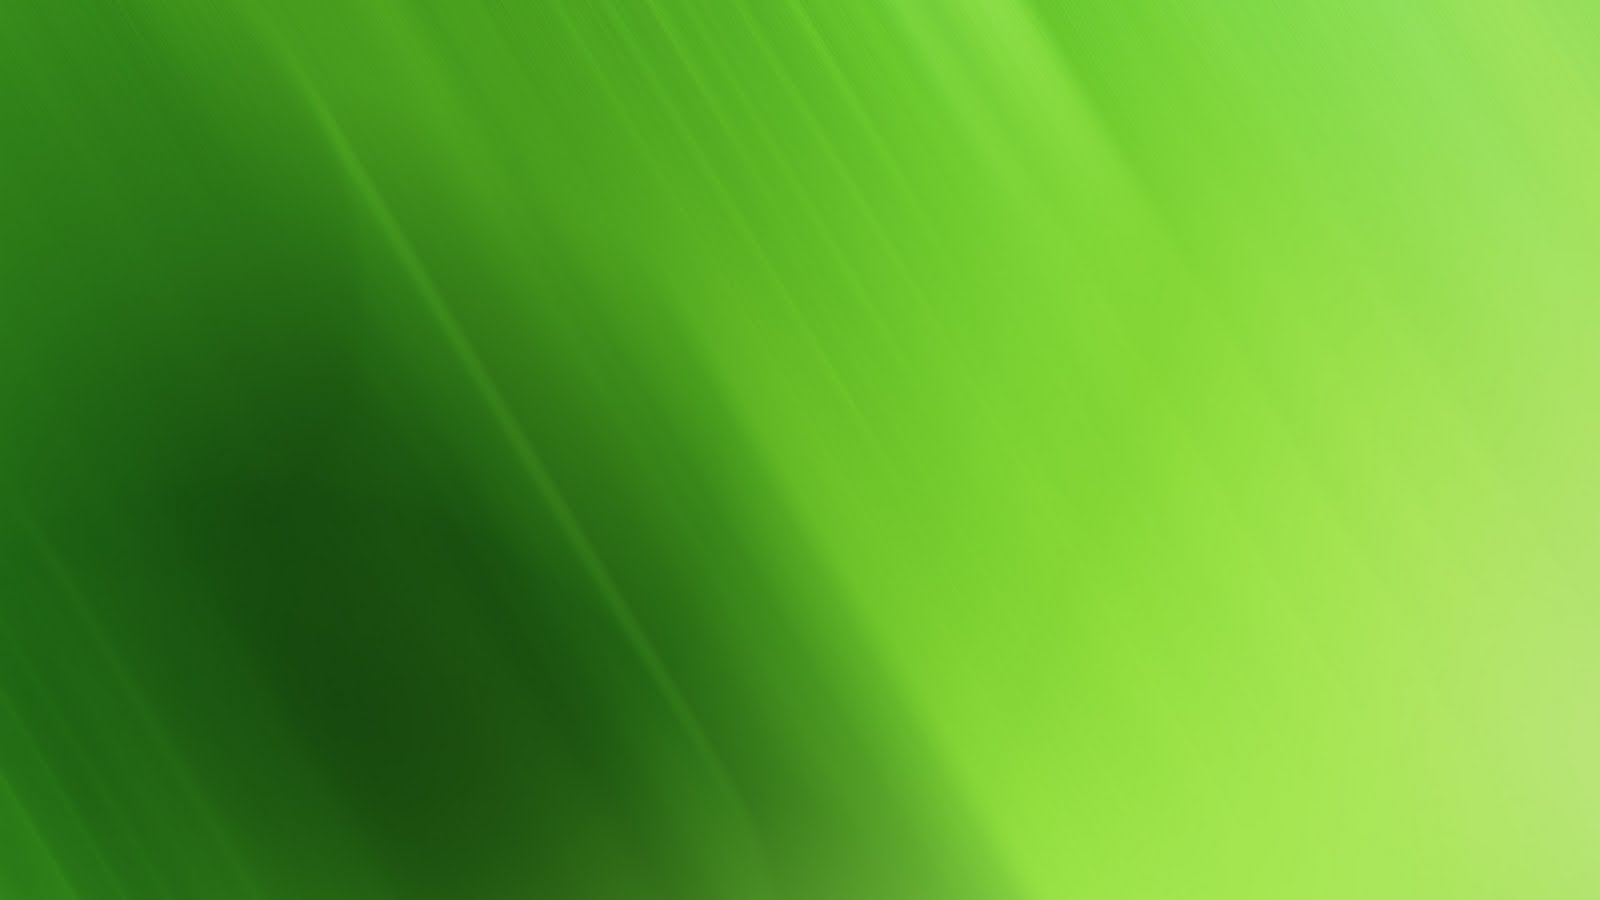 Green animation Backgrounds